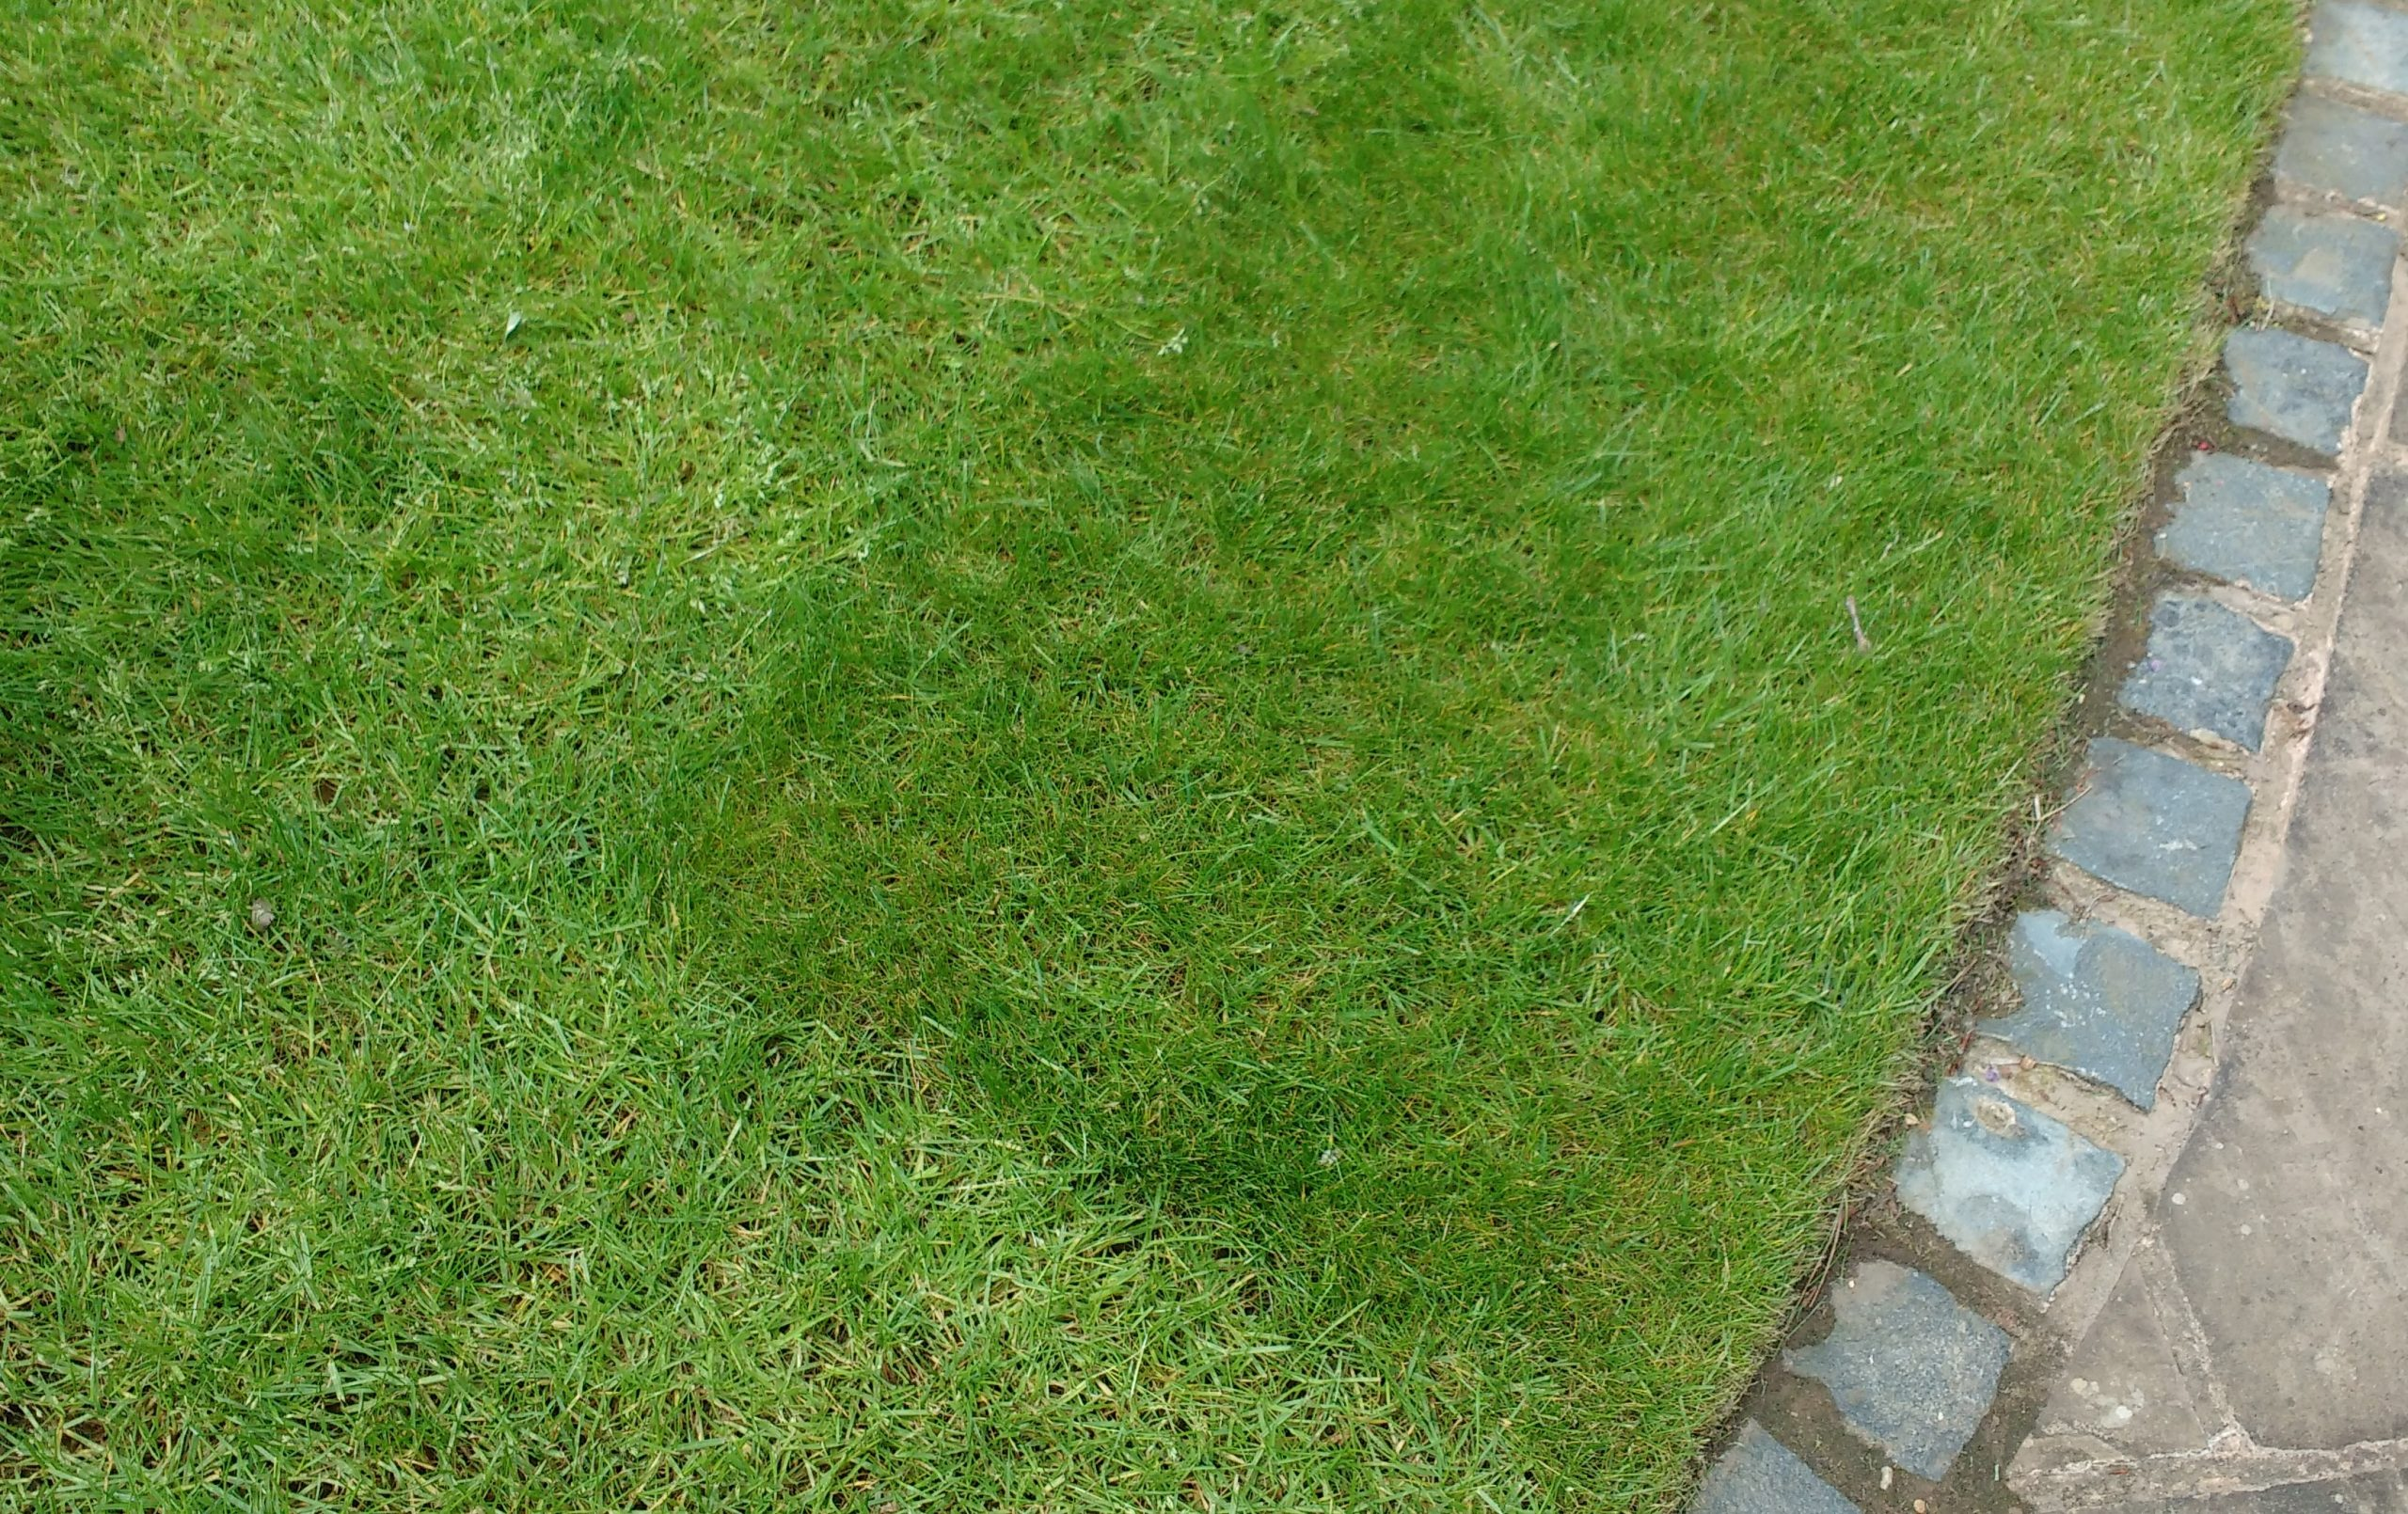 Should you seeed or turf your new lawn? Turf can lead to two different types of grass in a turf lawn